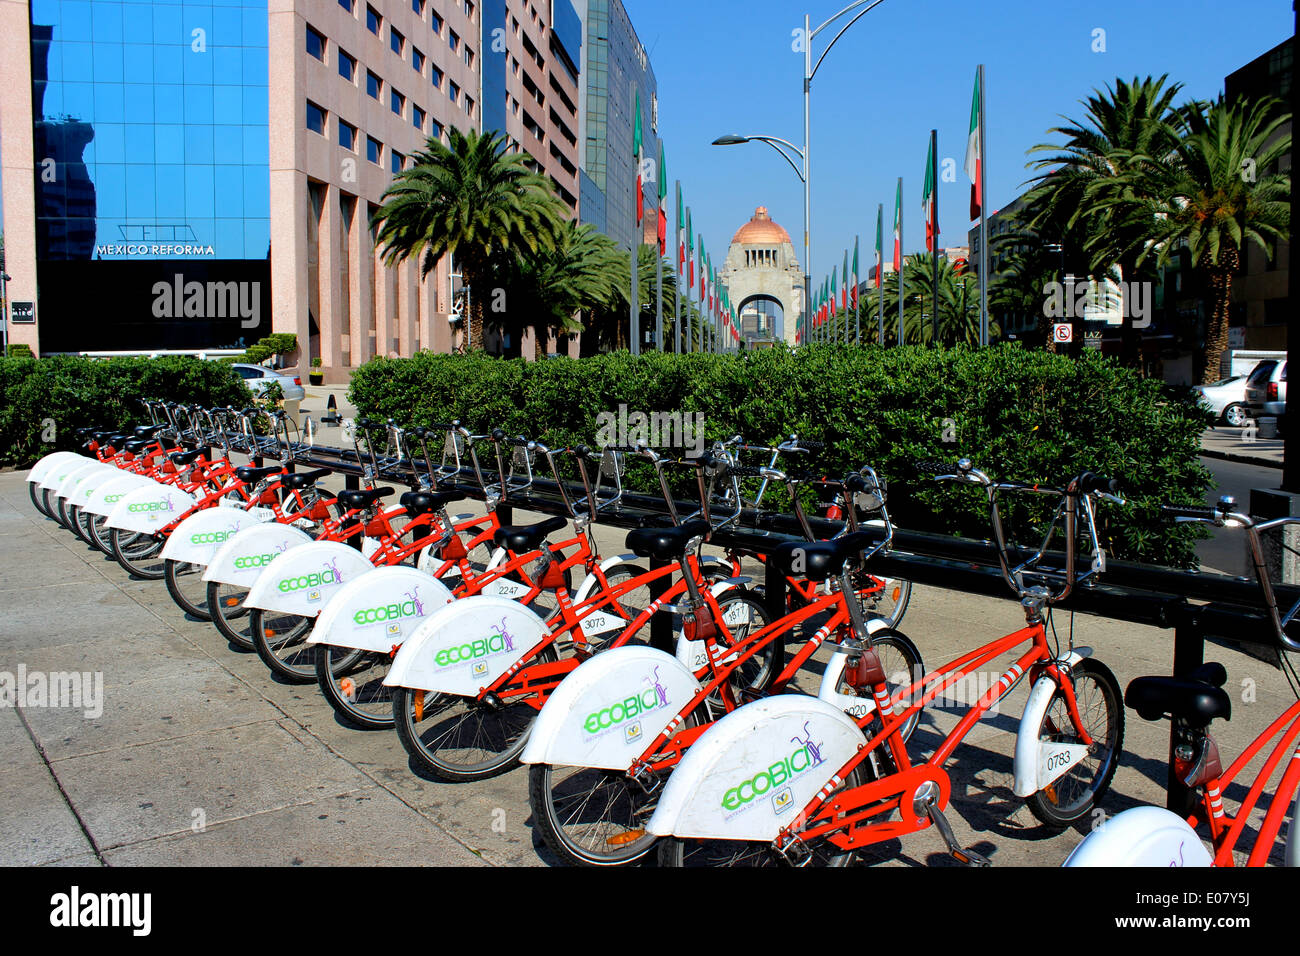 Eco-bicis - the shared cycling system in Mexico City - parked along Reforma with the Monumento a la Revolución in the background - Stock Image